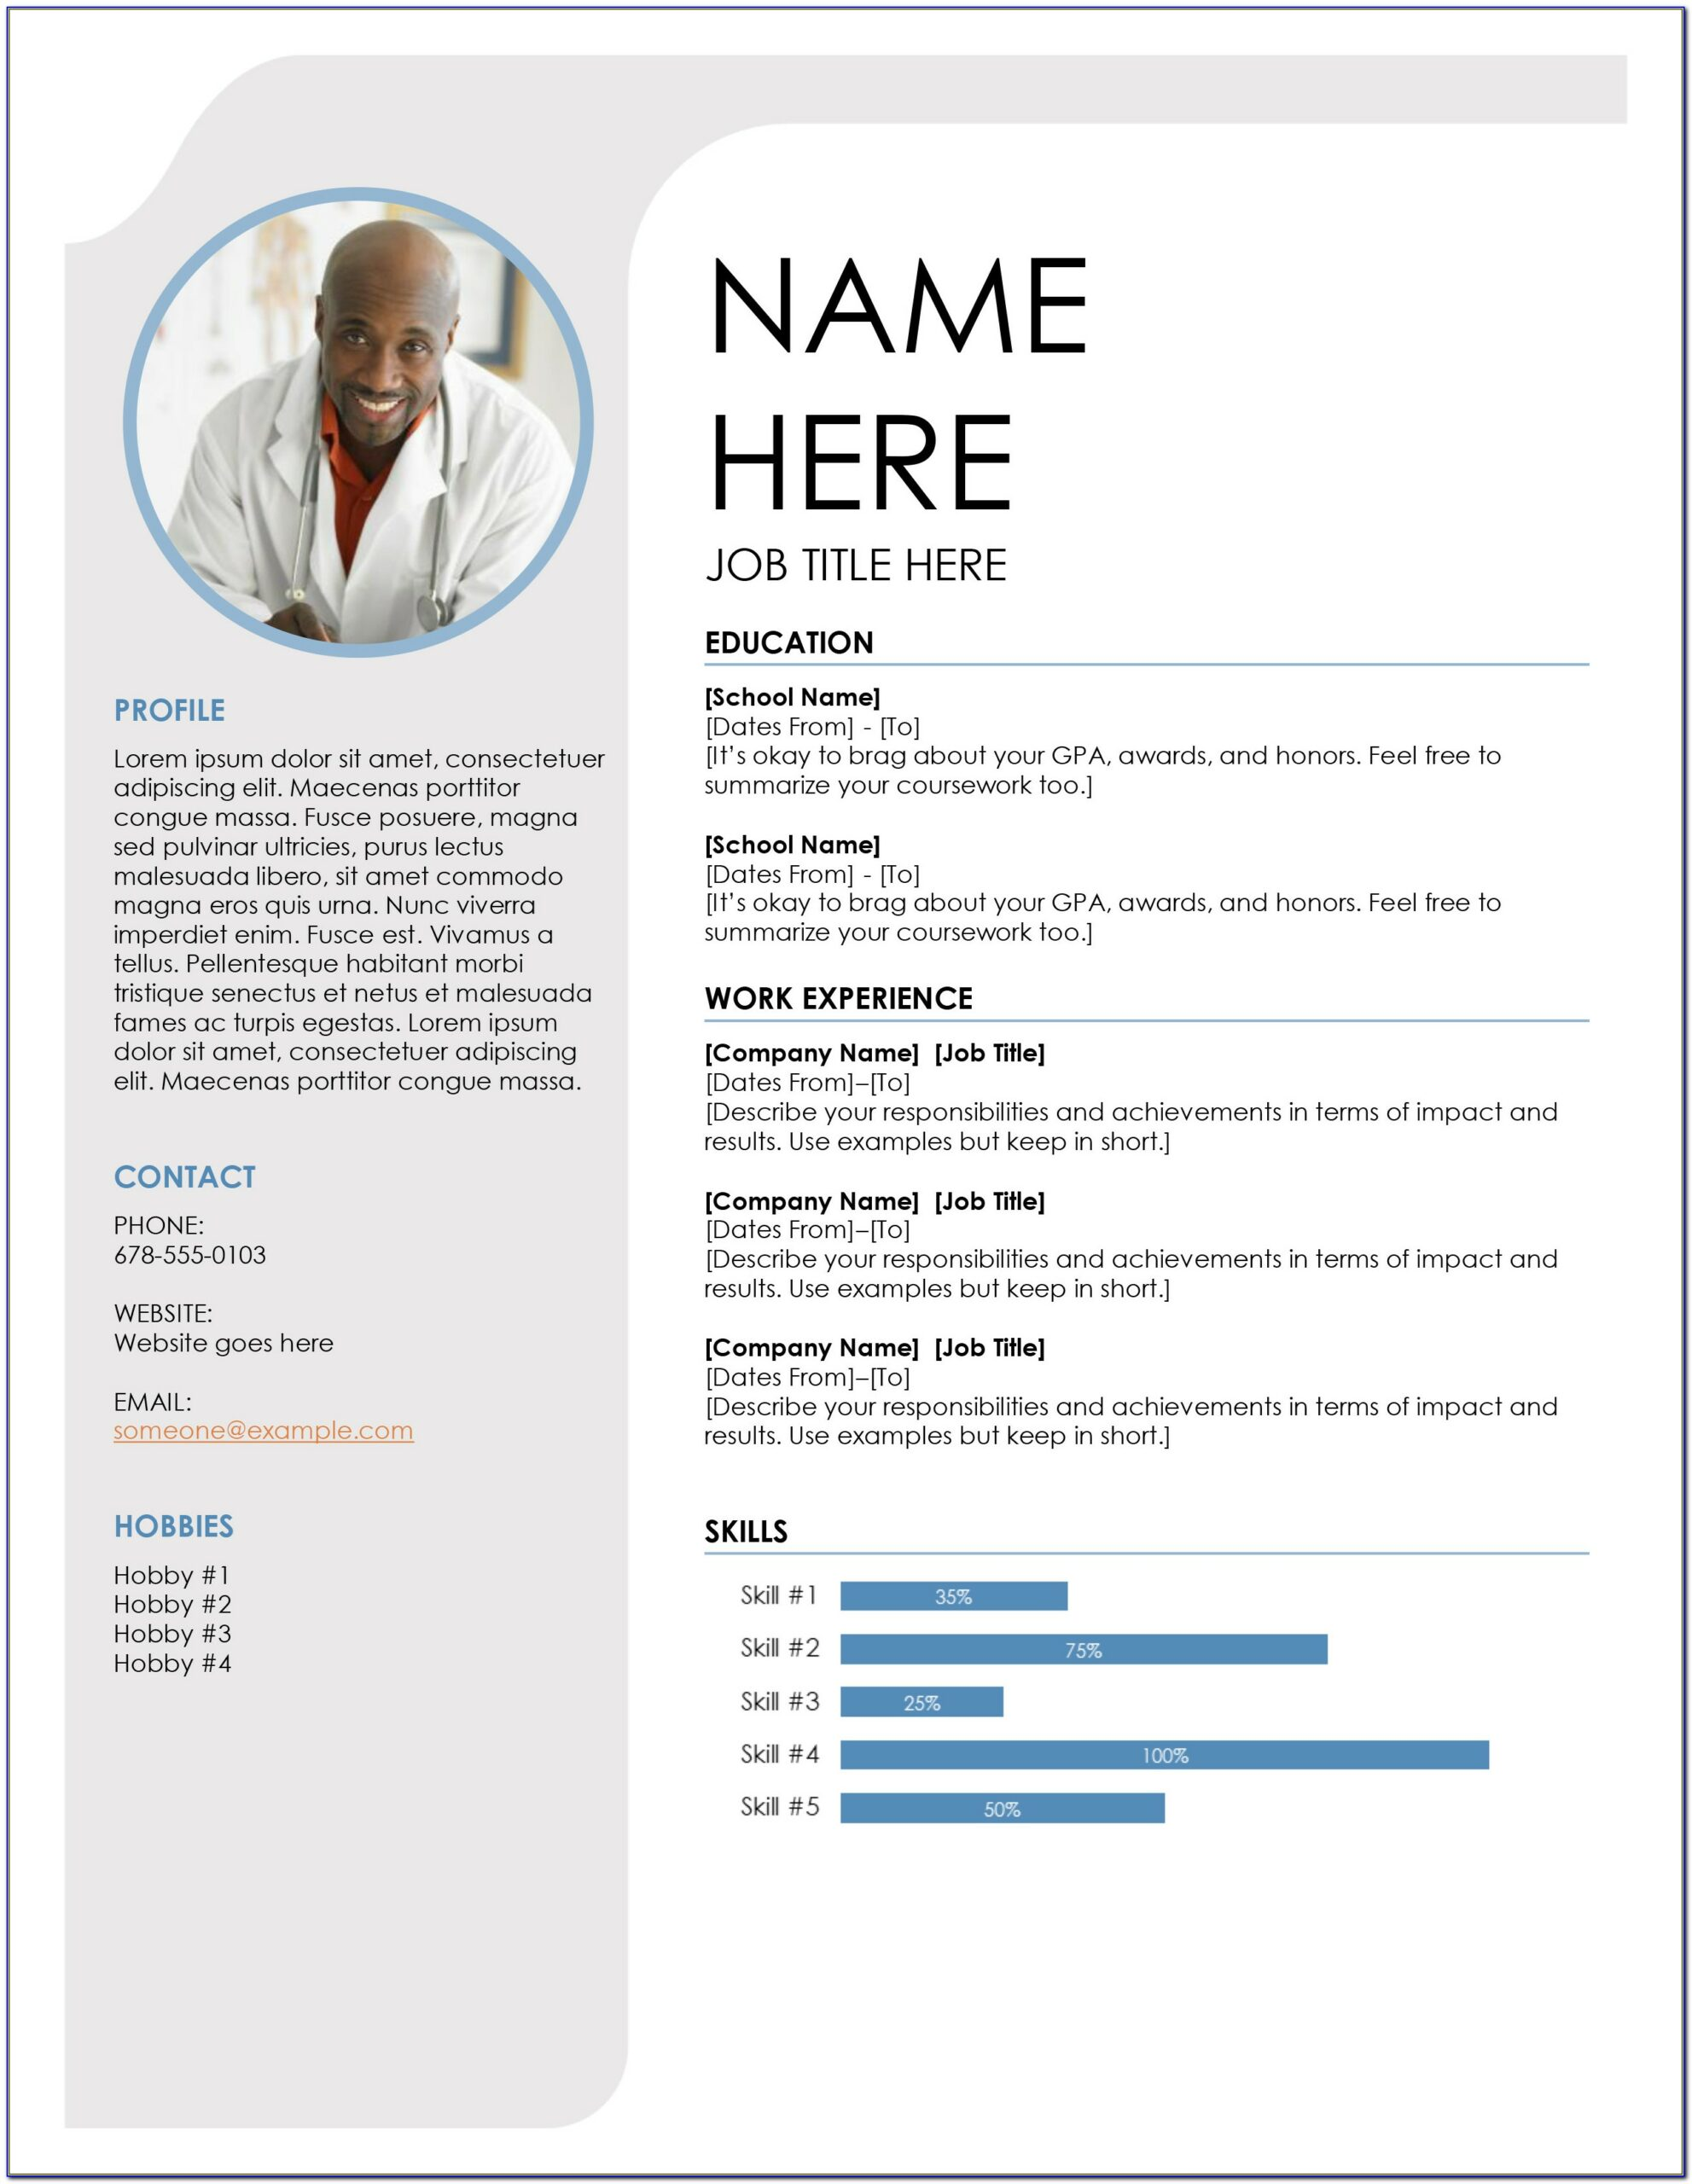 Free Resume Templates For Students With No Work Experience